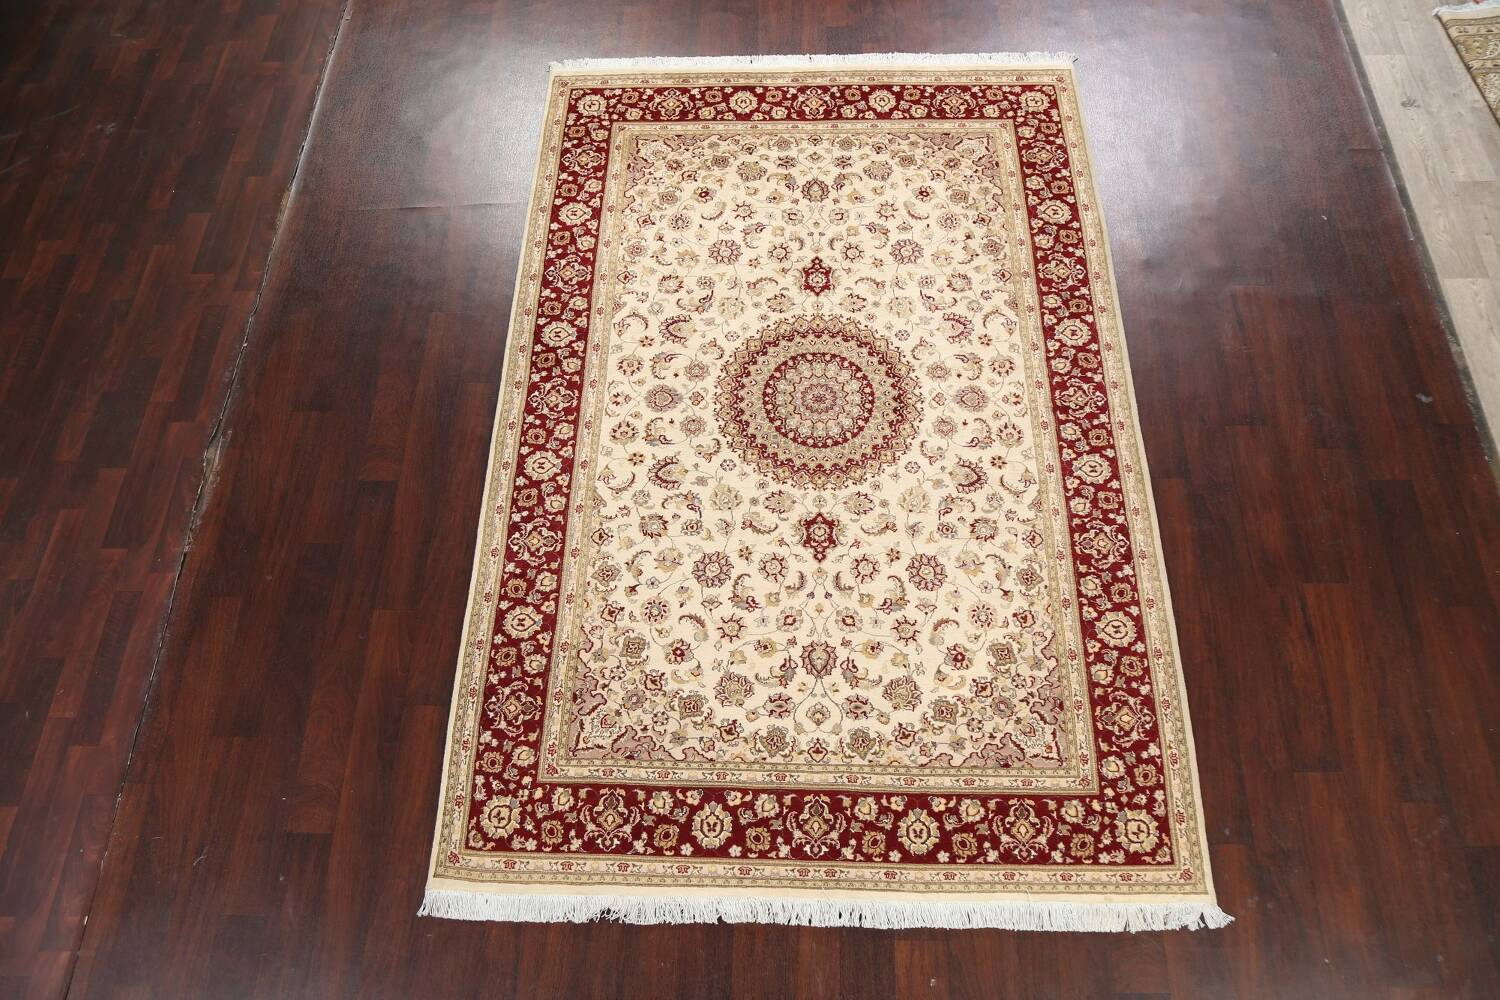 100% Vegetable Dye Floral Tabriz Oriental Area Rug 6x9 image 14